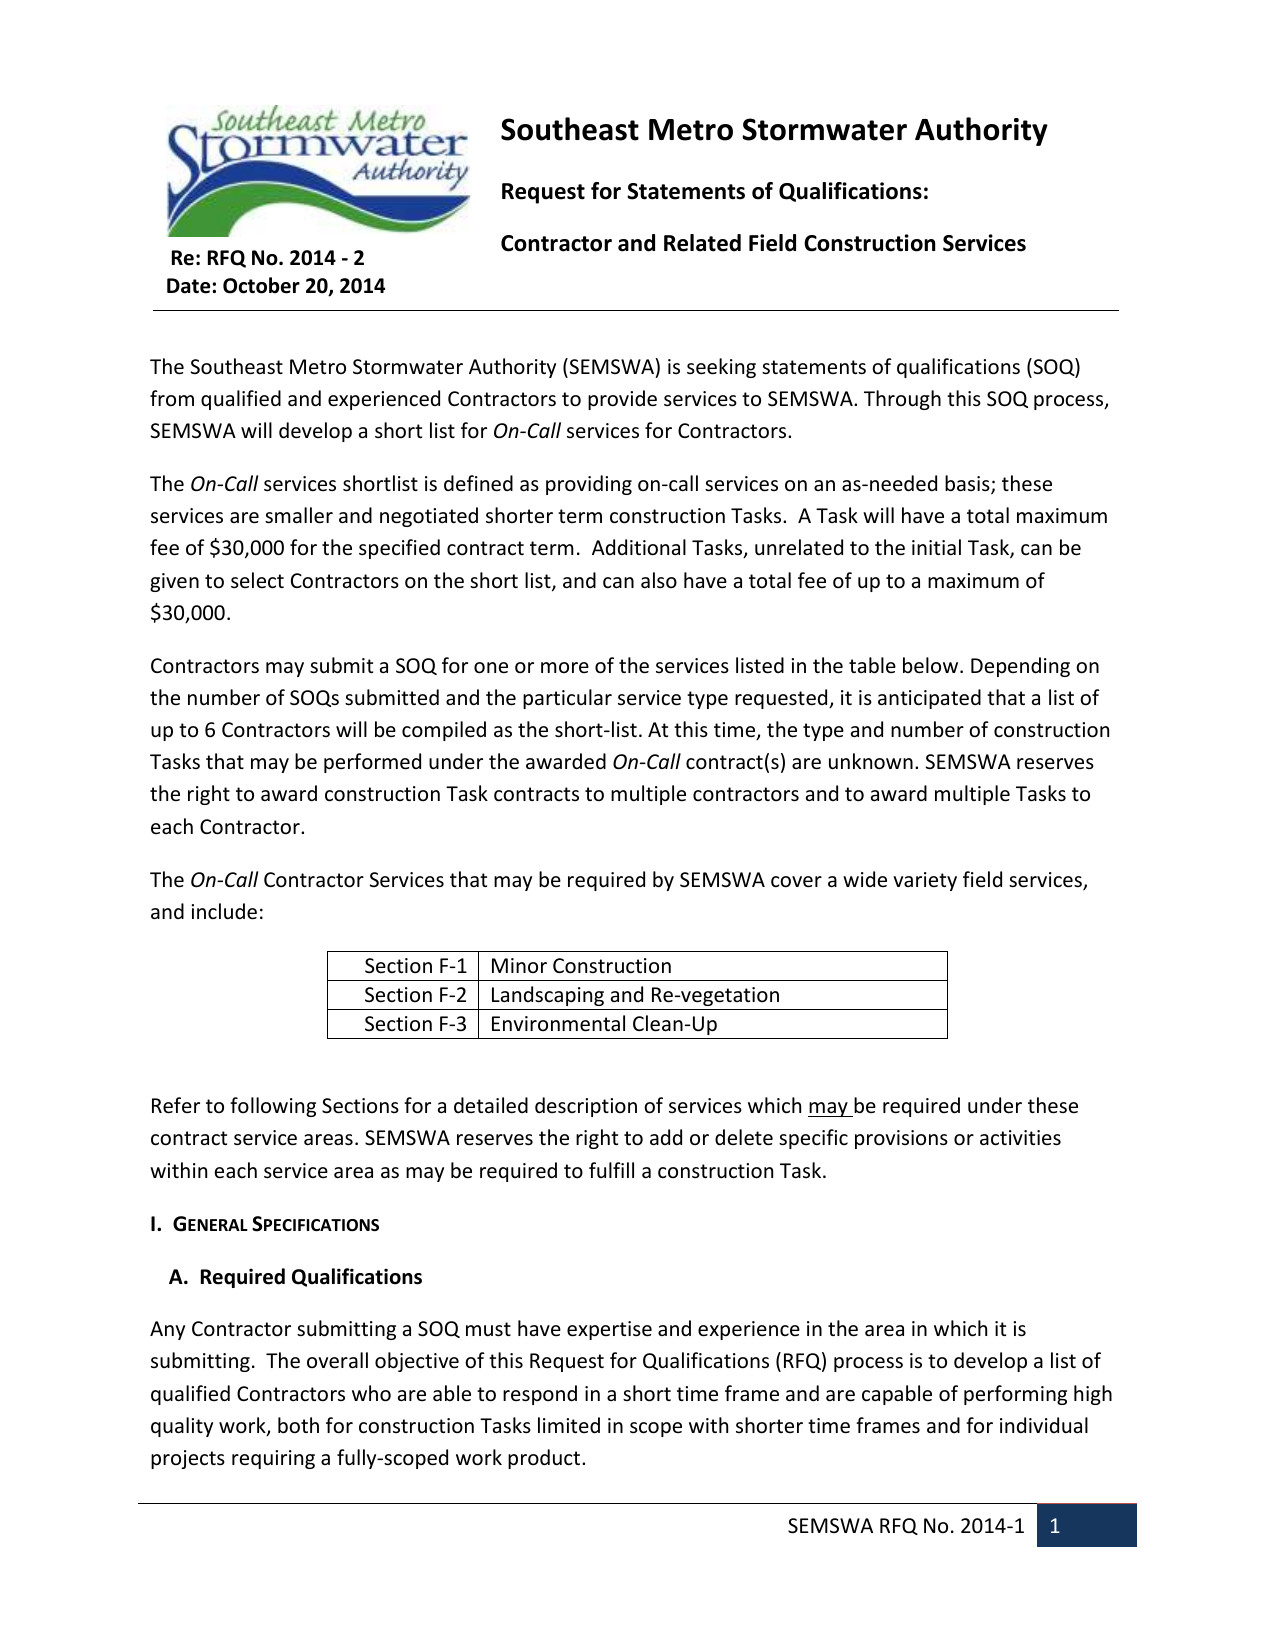 RFQ 2014-2 for Contractors - Southeast Metro Stormwater